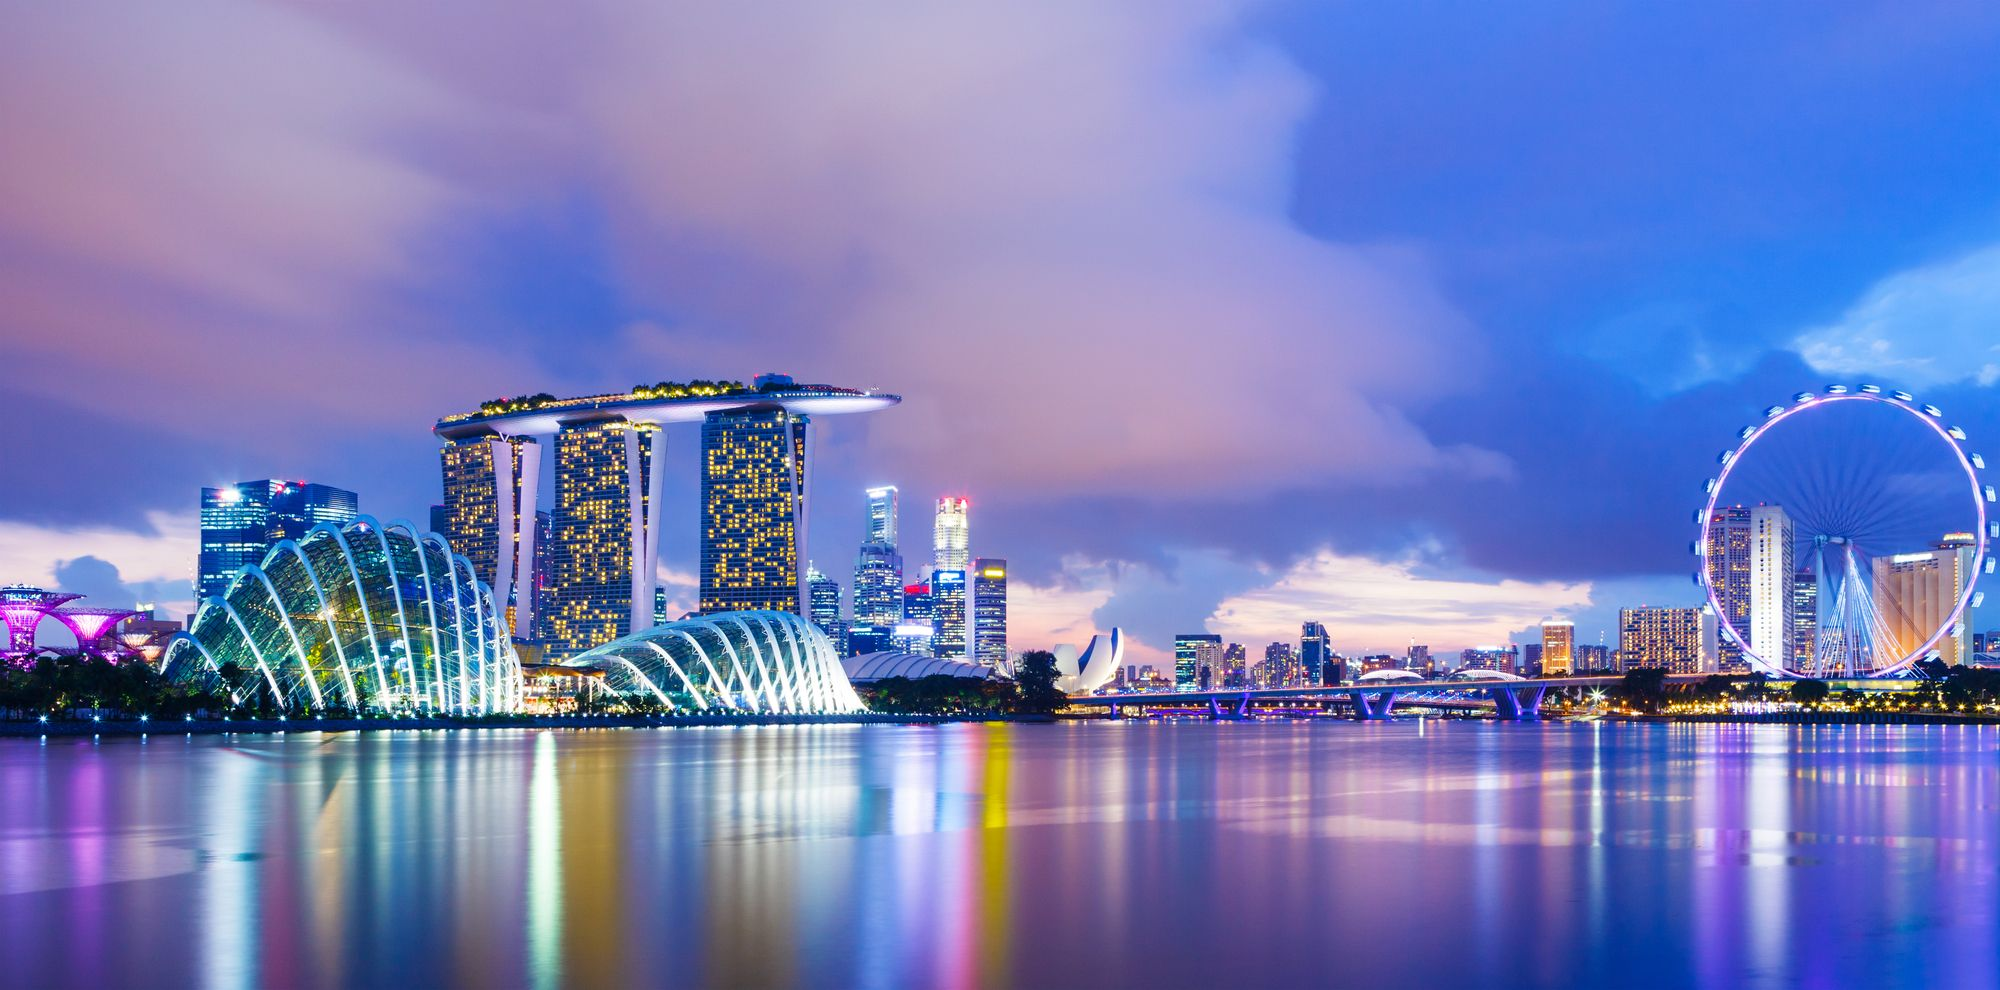 What-are-the-factors-that-make-the-economy-in-Singapore-tick?